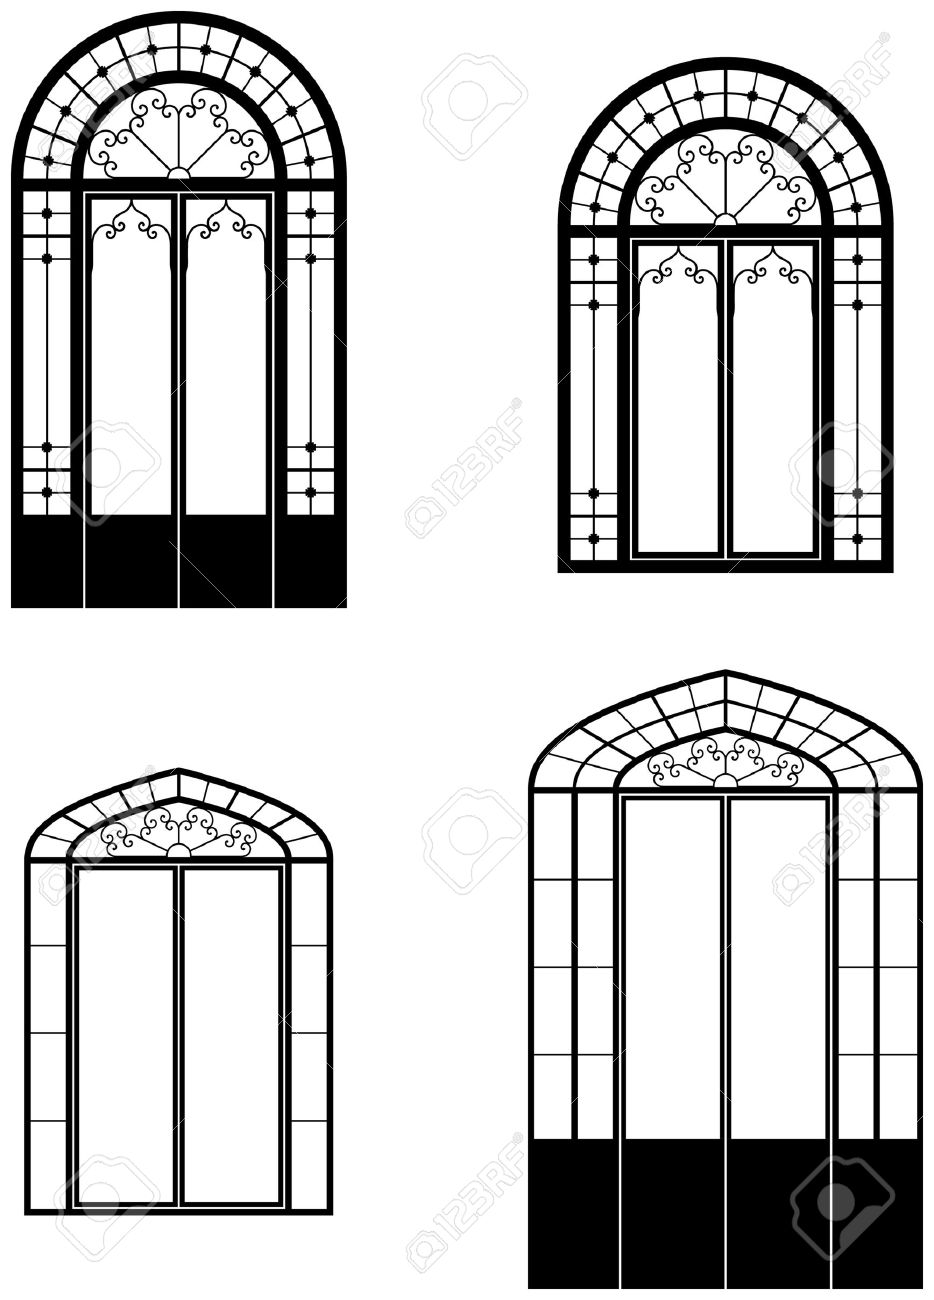 Windows clipart arched window Decoration For  Images pictures